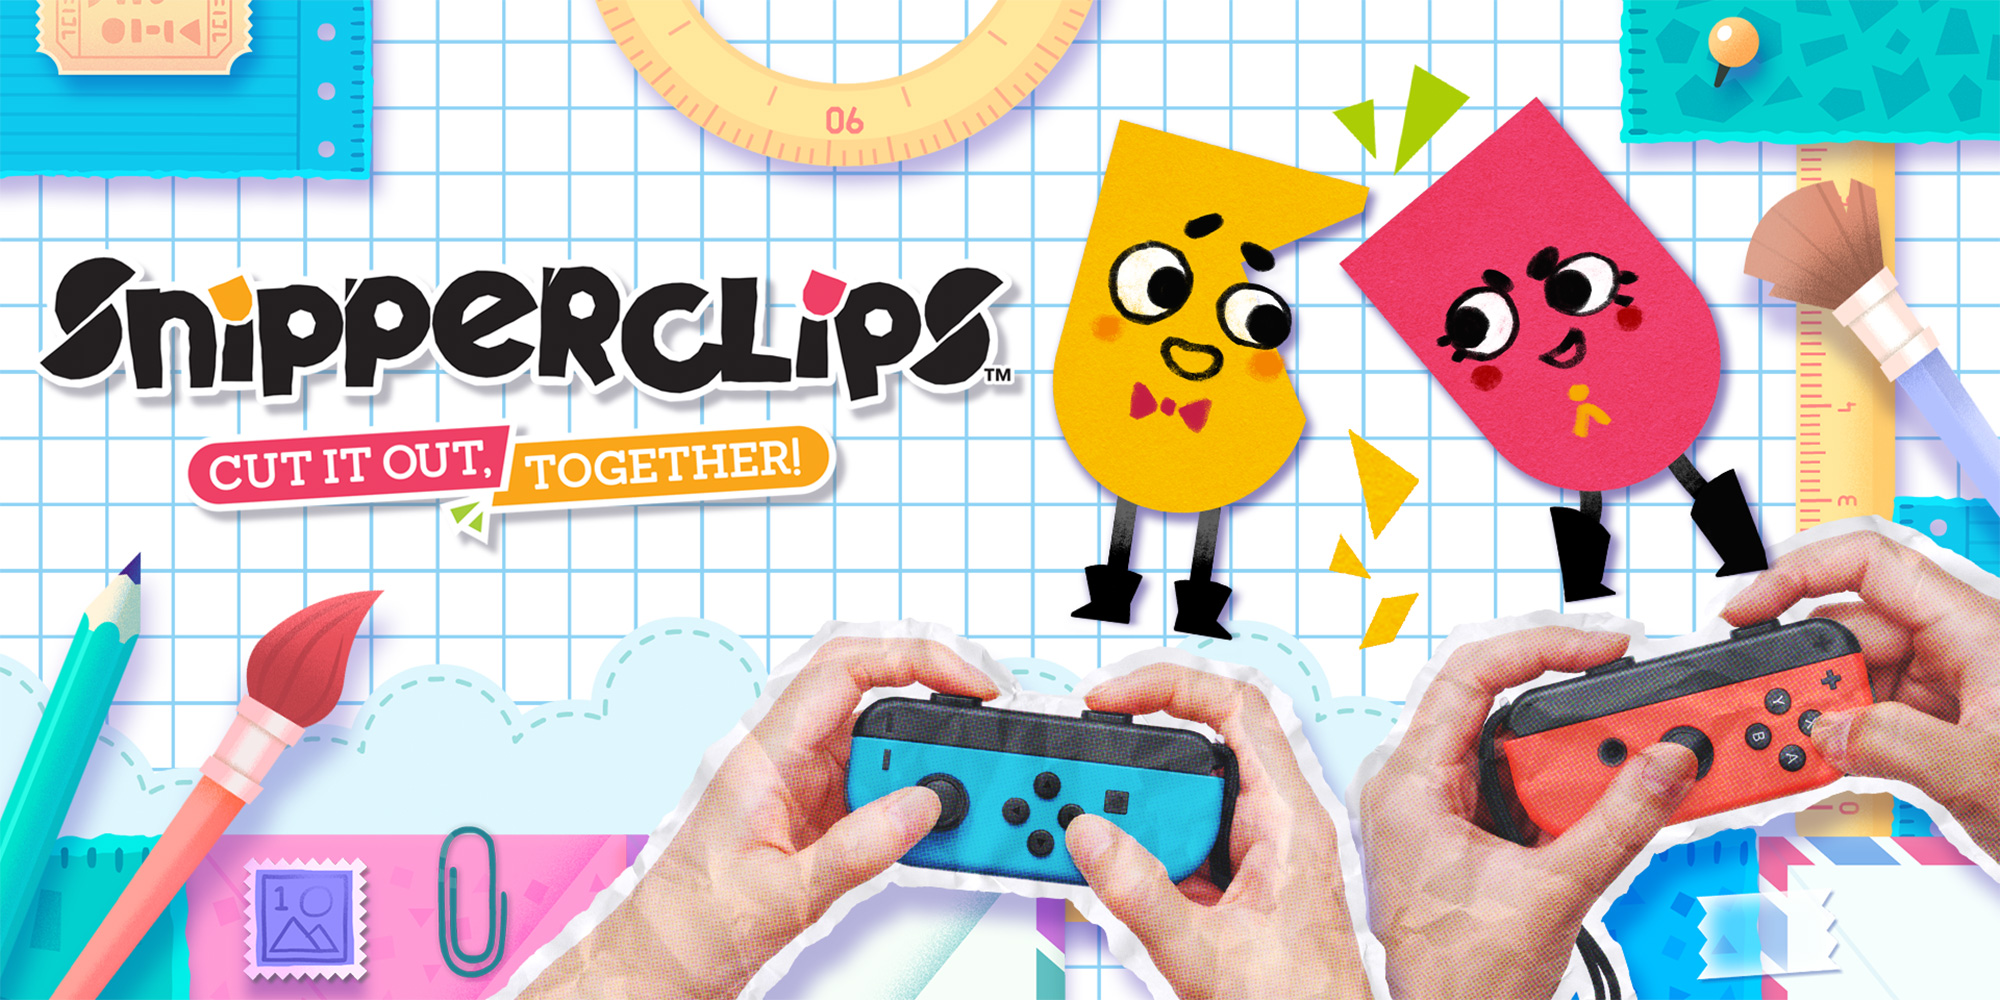 Snipperclips 2